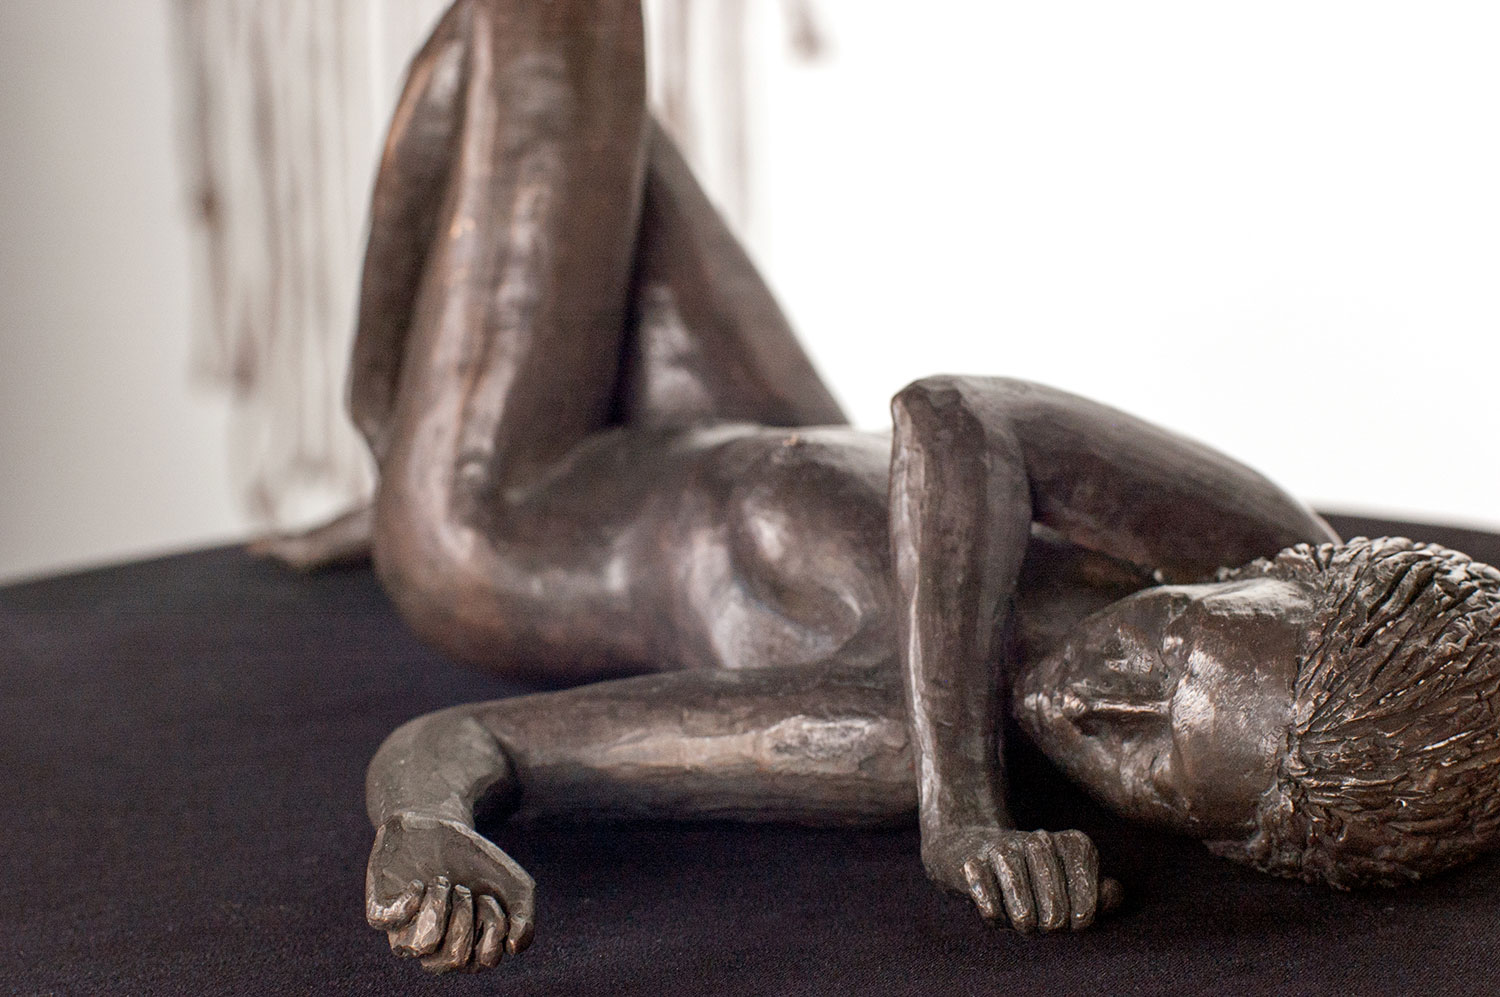 acquiescence_bronze_sculpture_1.jpg